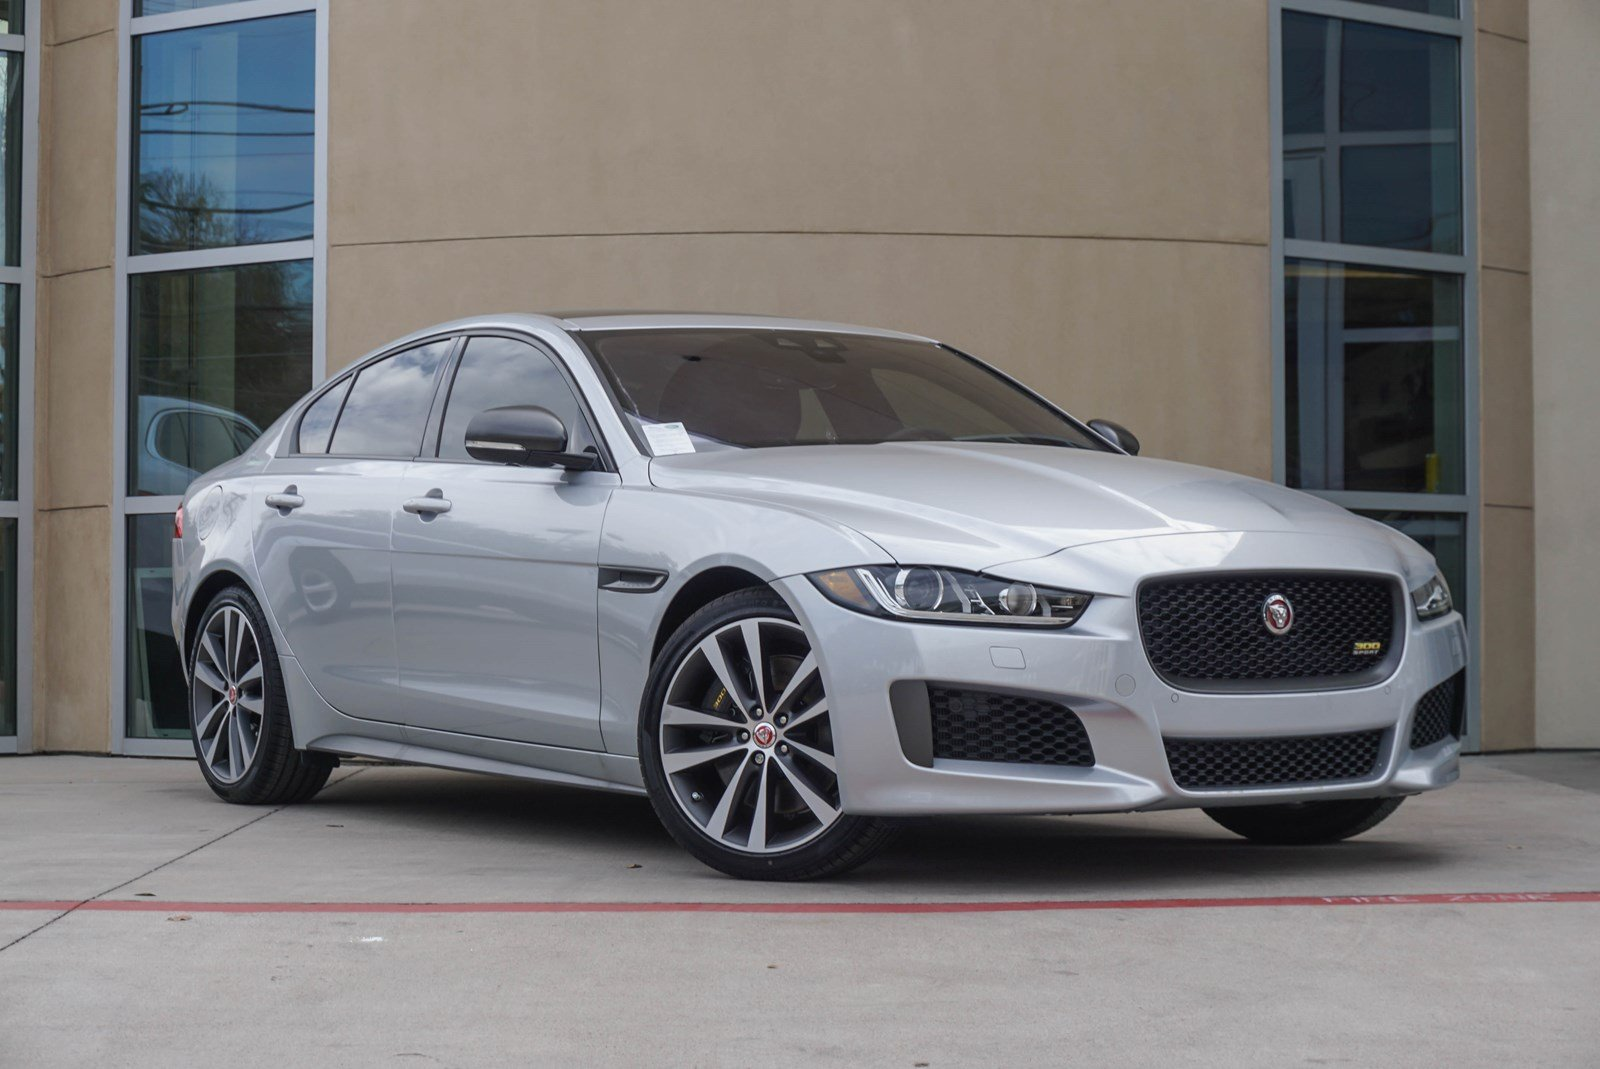 70 All New 2019 Jaguar Xe Sedan Ratings